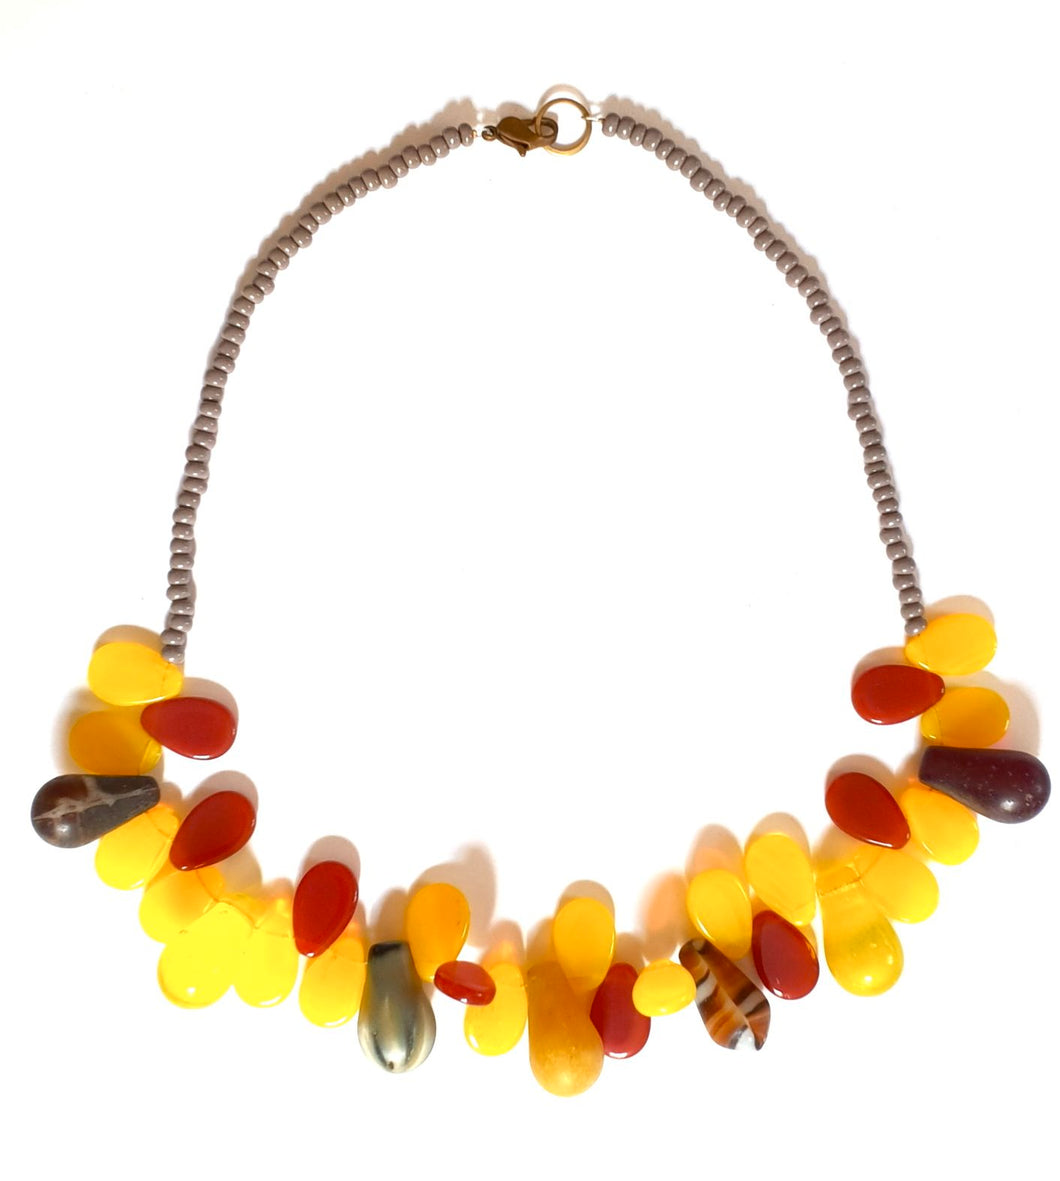 African Trade Bead Necklace Yellow Carnelian